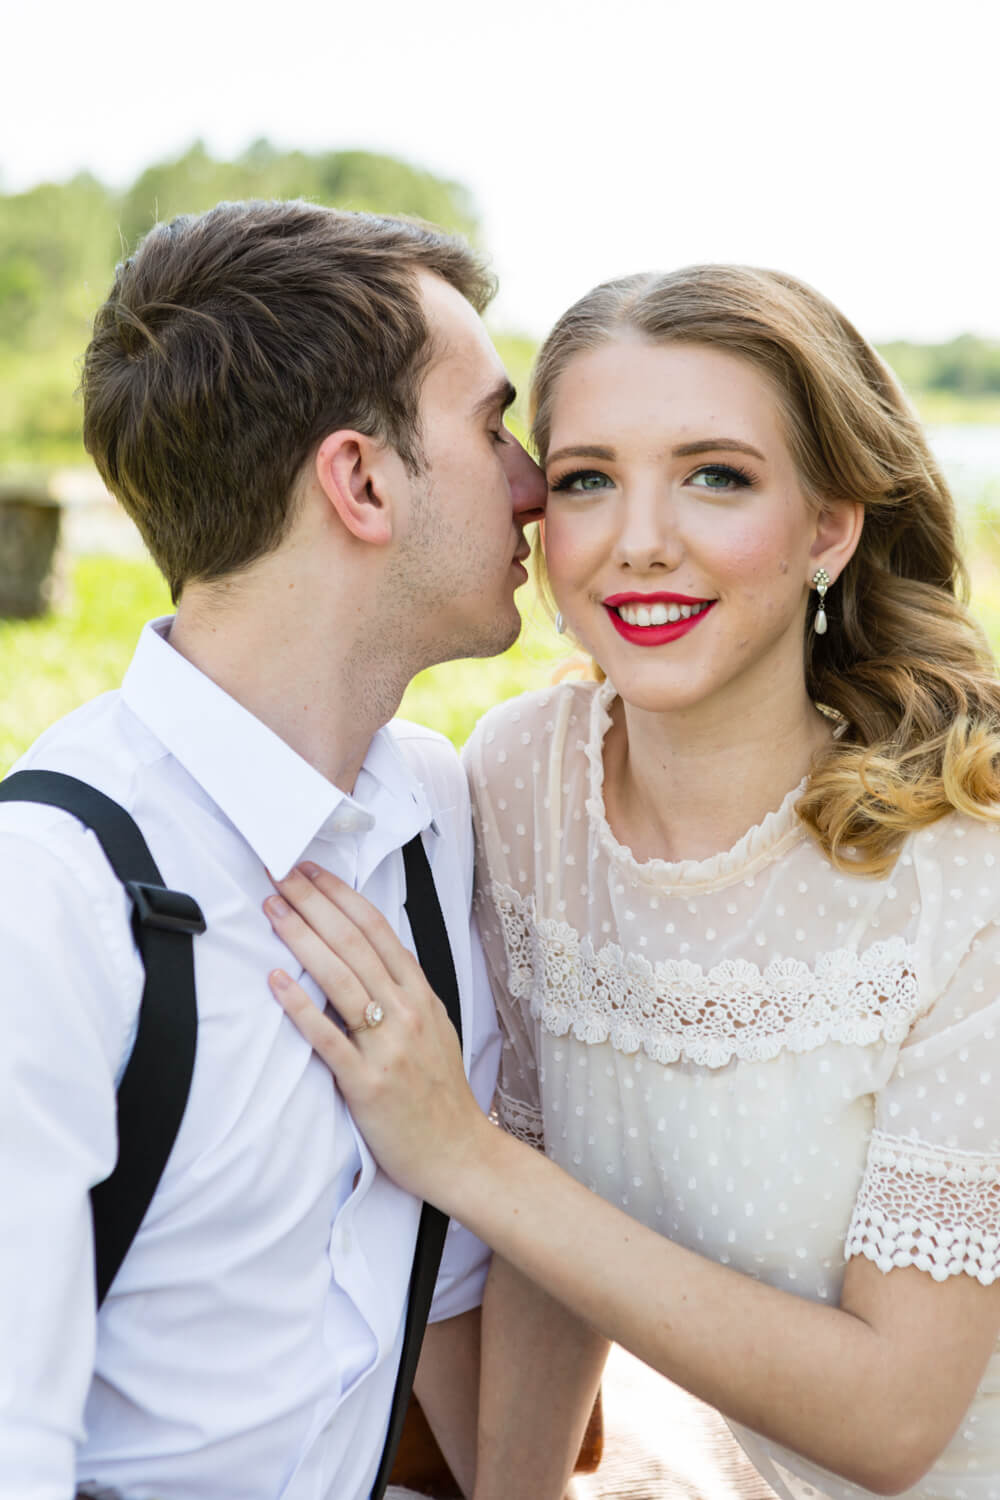 Intimate wedding shoot themed around The Notebook Movie